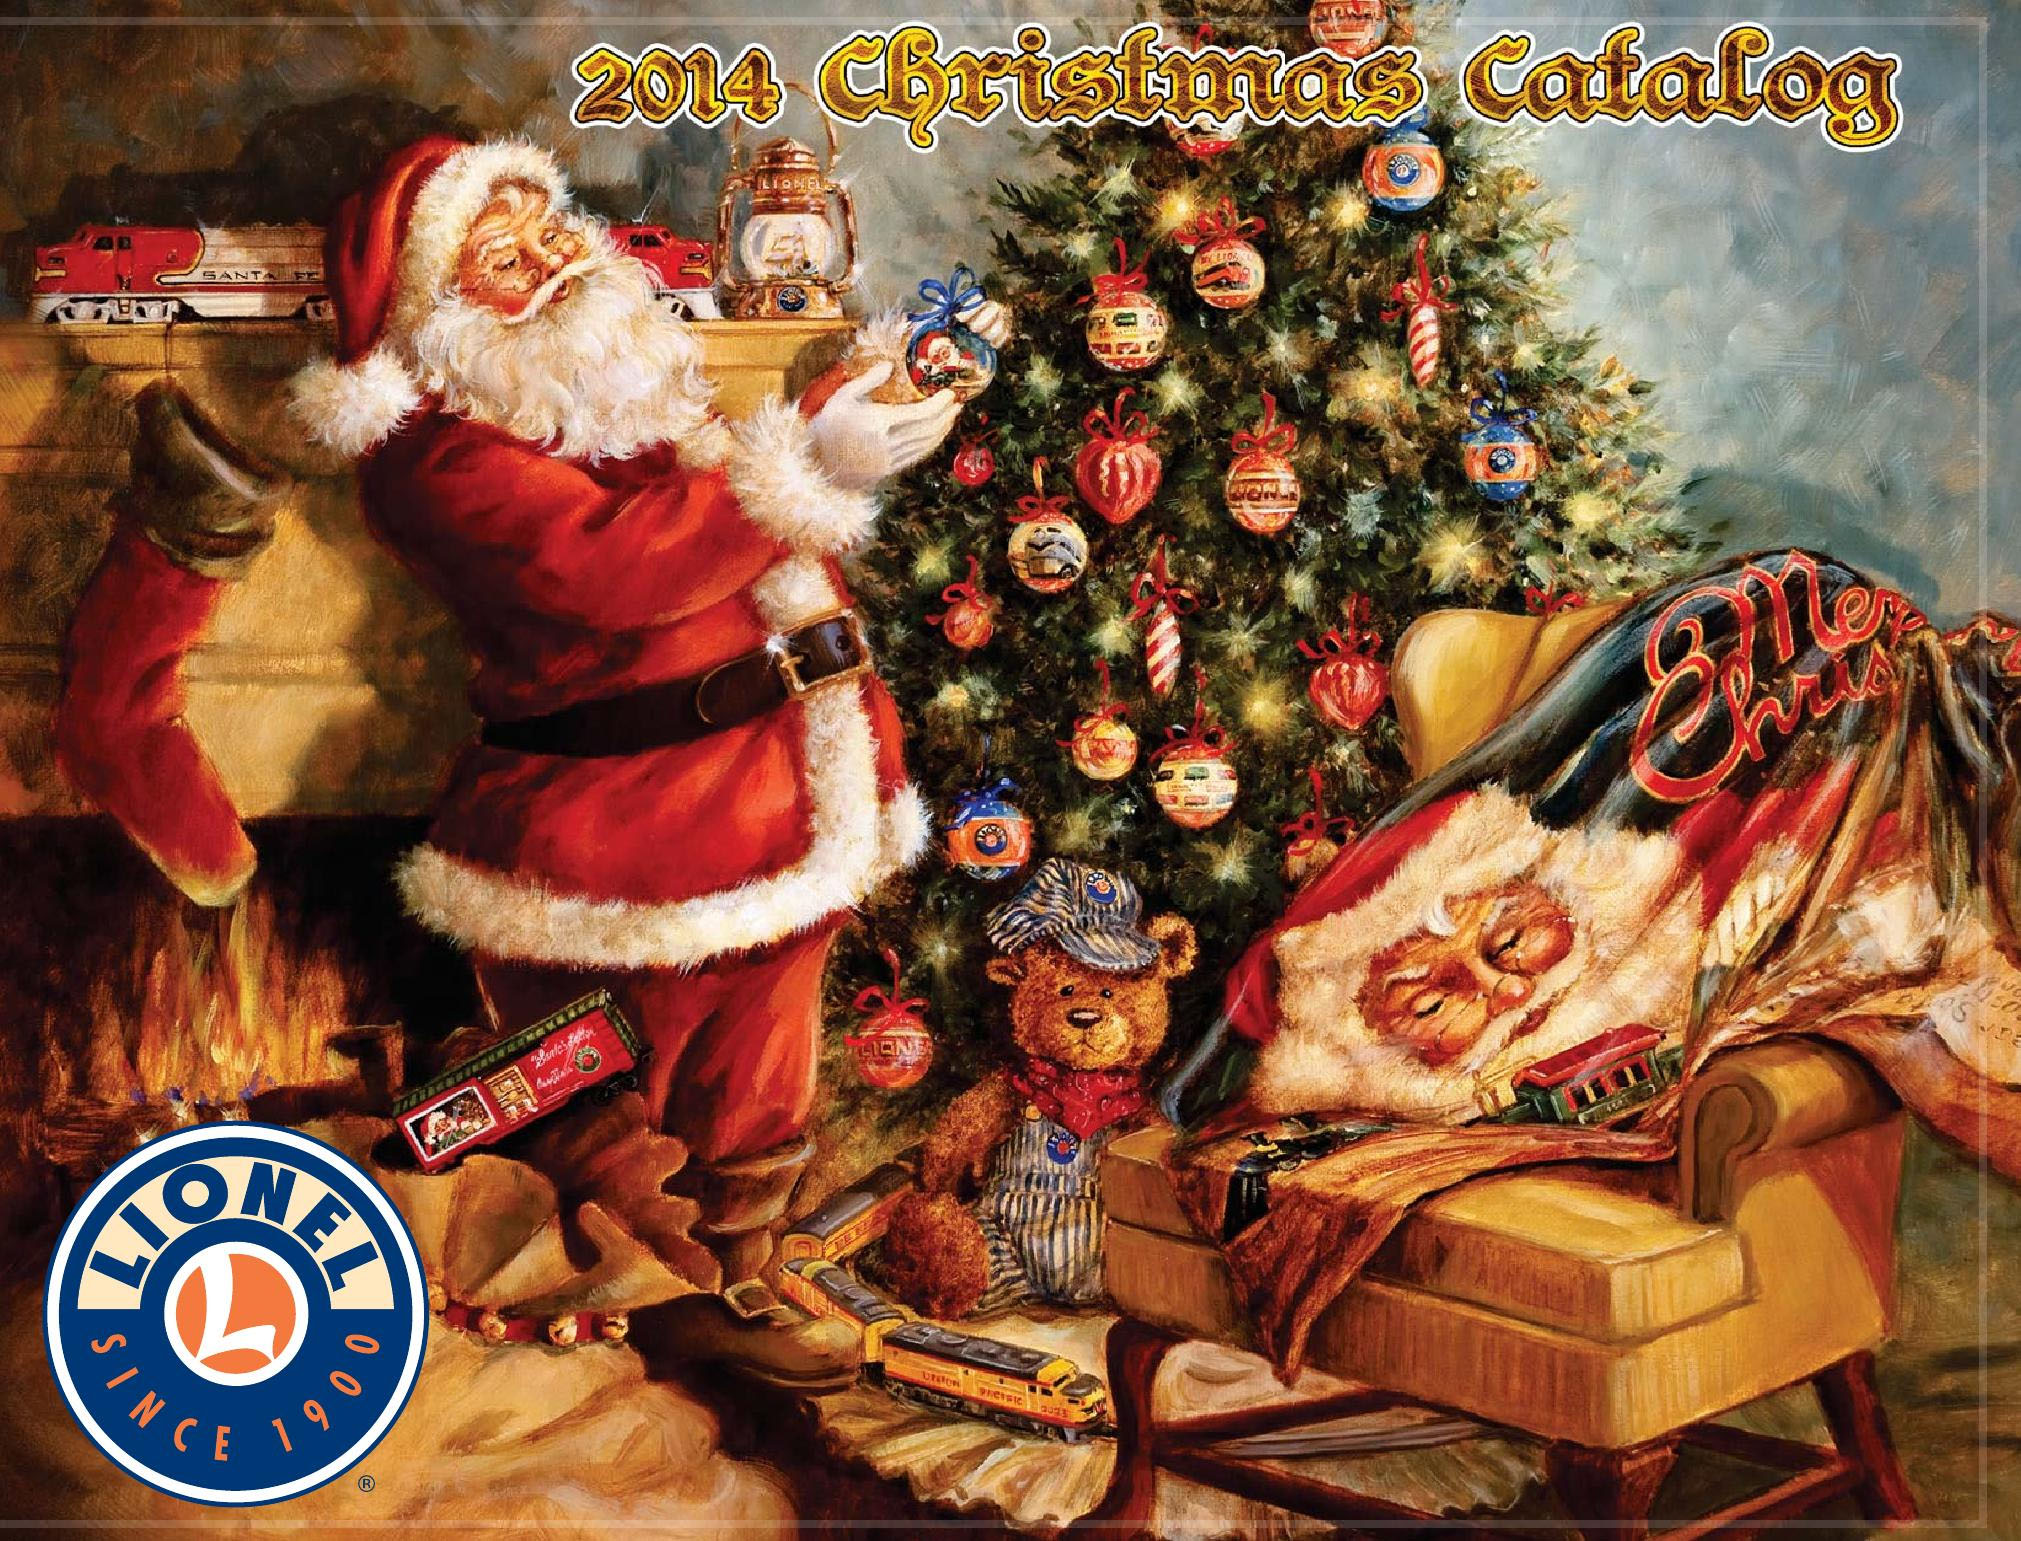 Lionel Catalogs - Christmas 2014